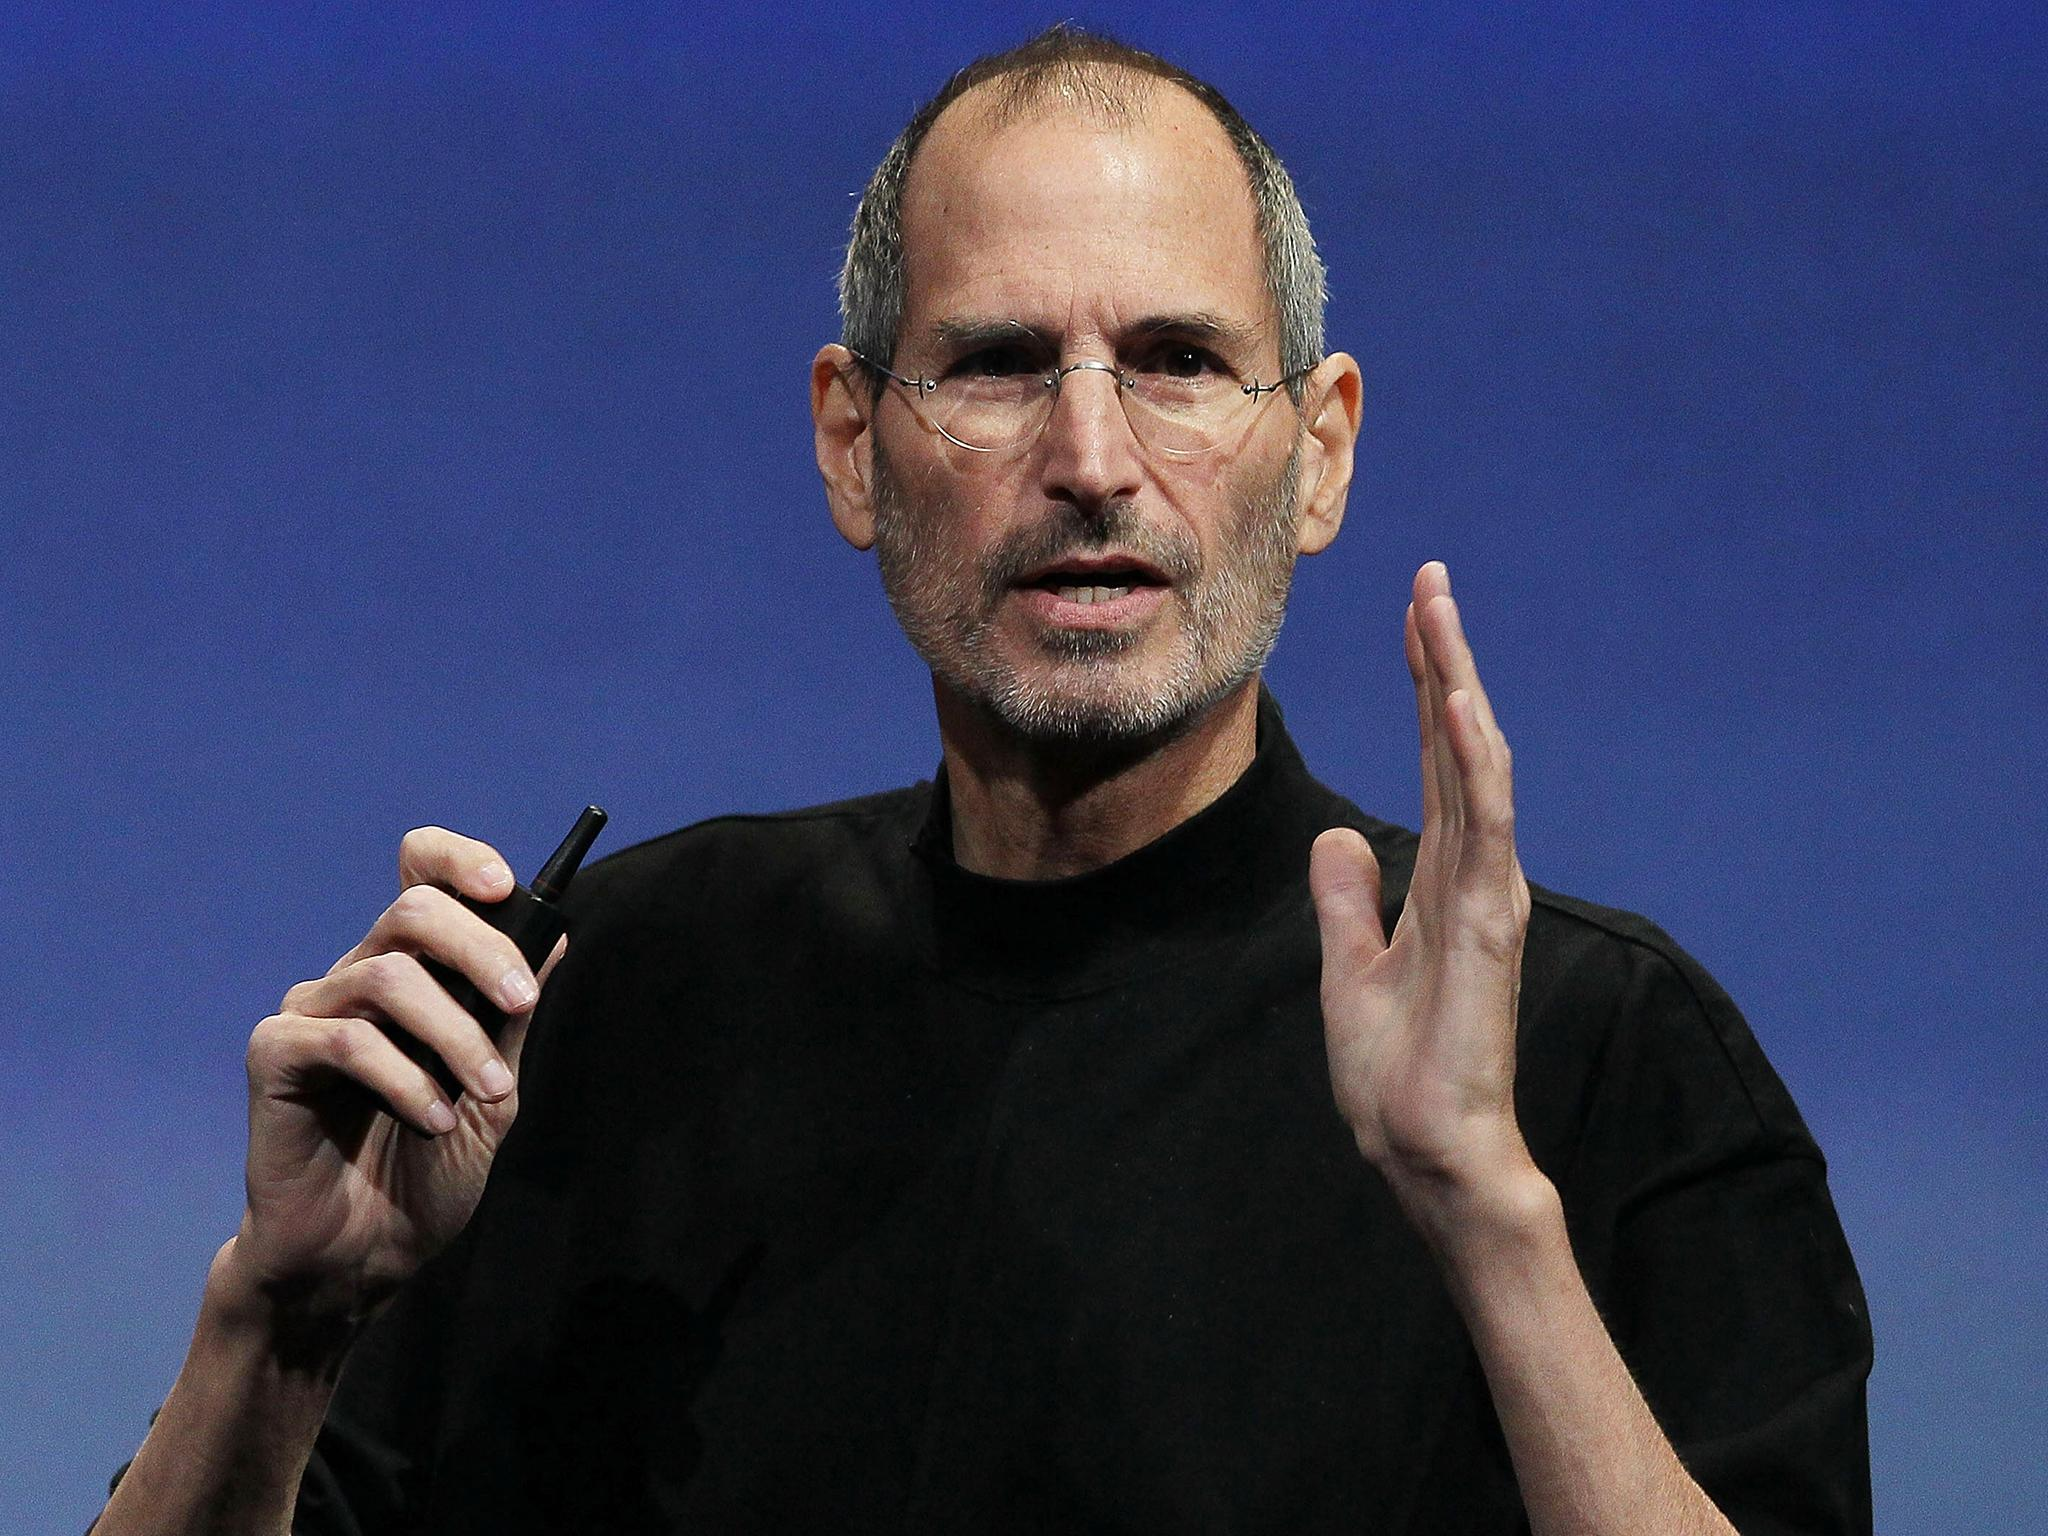 Read a job application from Steve Jobs from three years before he cofounded Apple